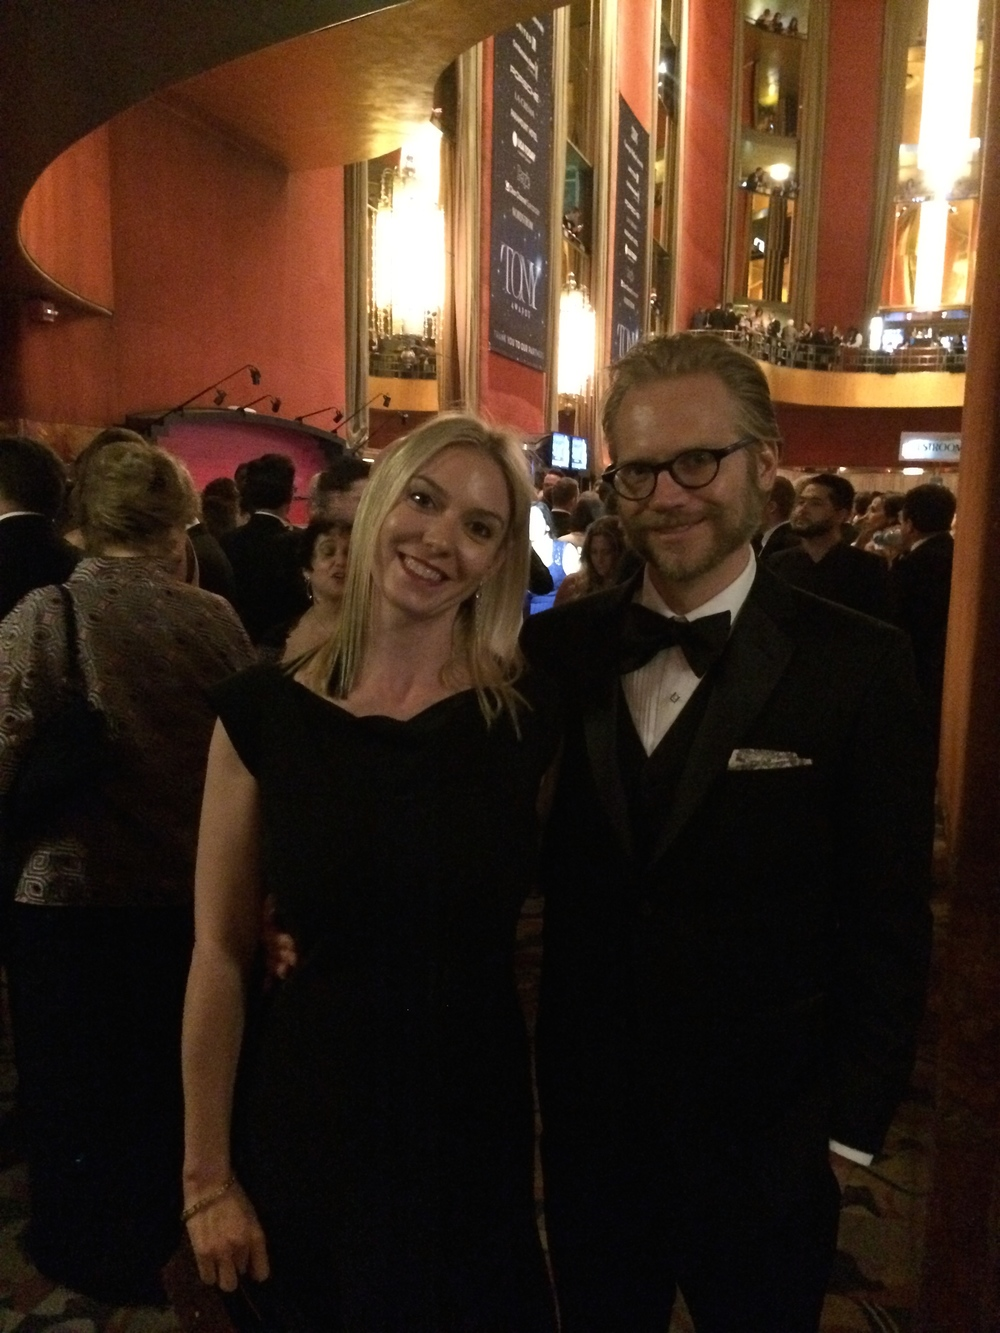 Nick Kargel and wife Emily Zeck at Tony Awards 2015